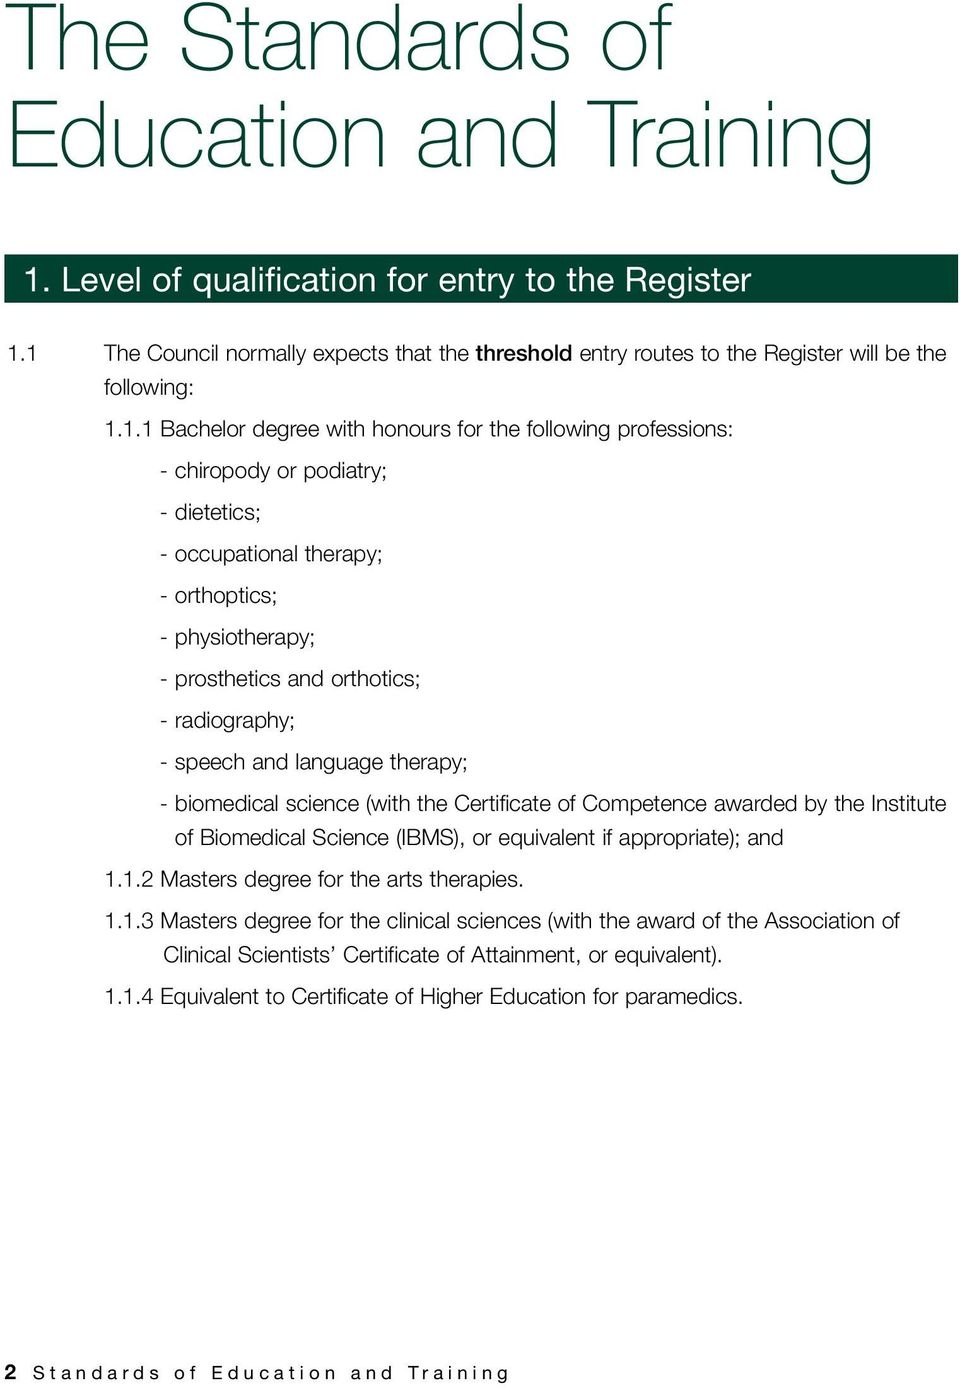 1 The Council normally expects that the threshold entry routes to the Register will be the following: 1.1.1 Bachelor degree with honours for the following professions: - chiropody or podiatry; -